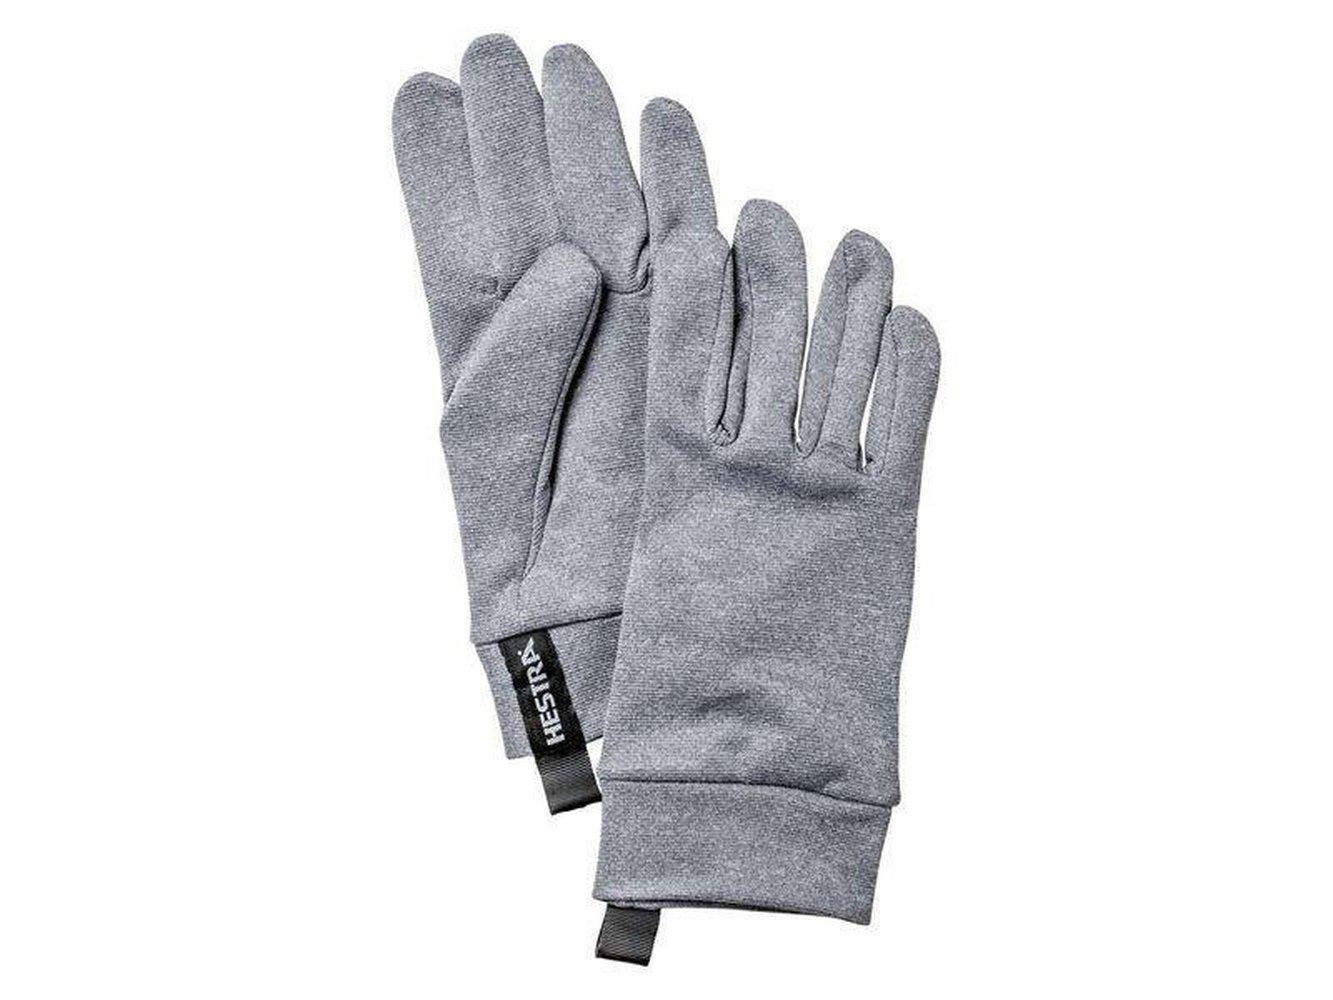 Polartec Power Dry - 5 finger Gloves Hestra Grey 9